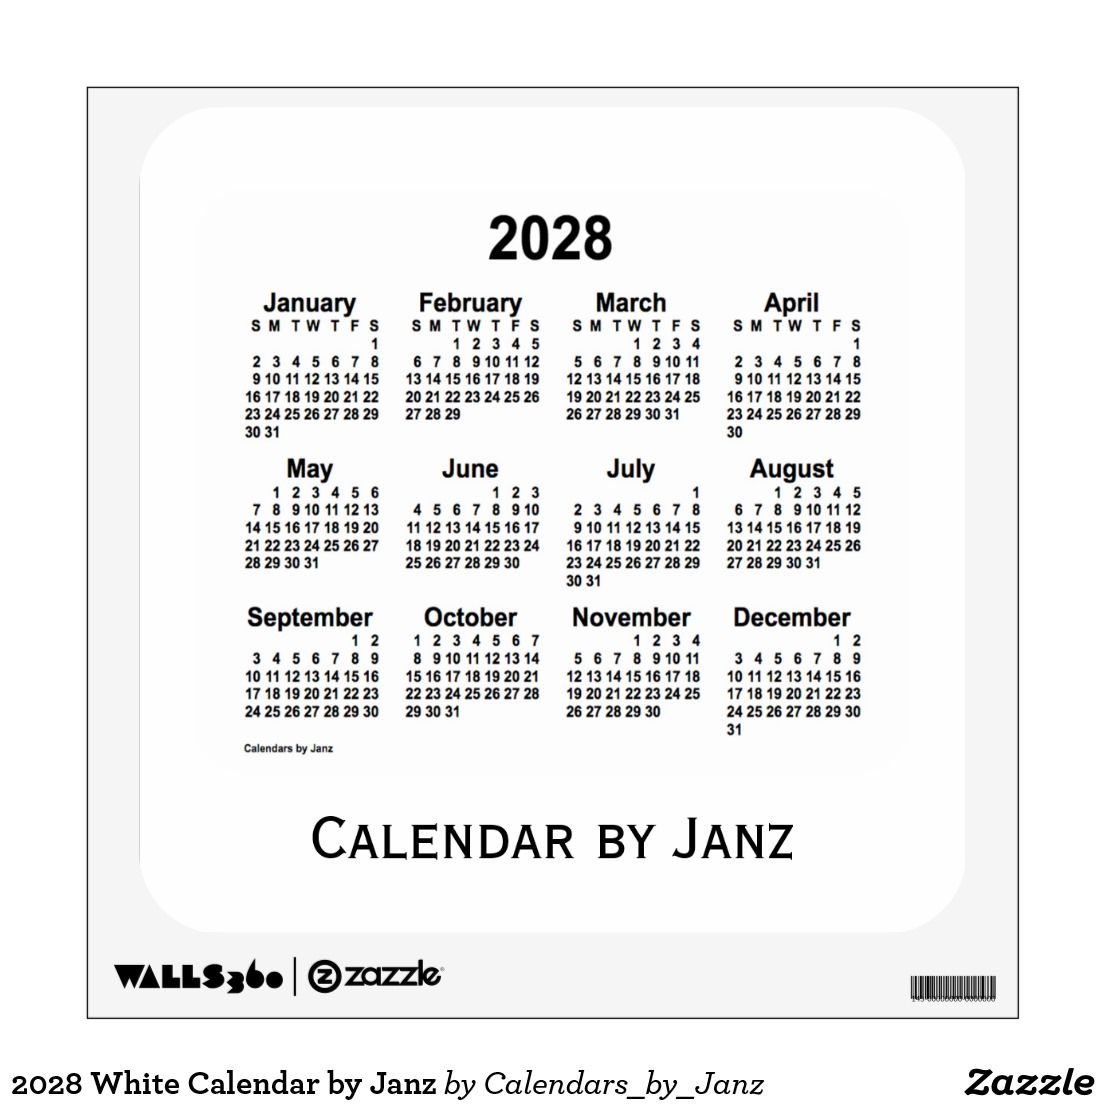 2028 White Calendar By Janz Wall Decal Zazzle Com Custom